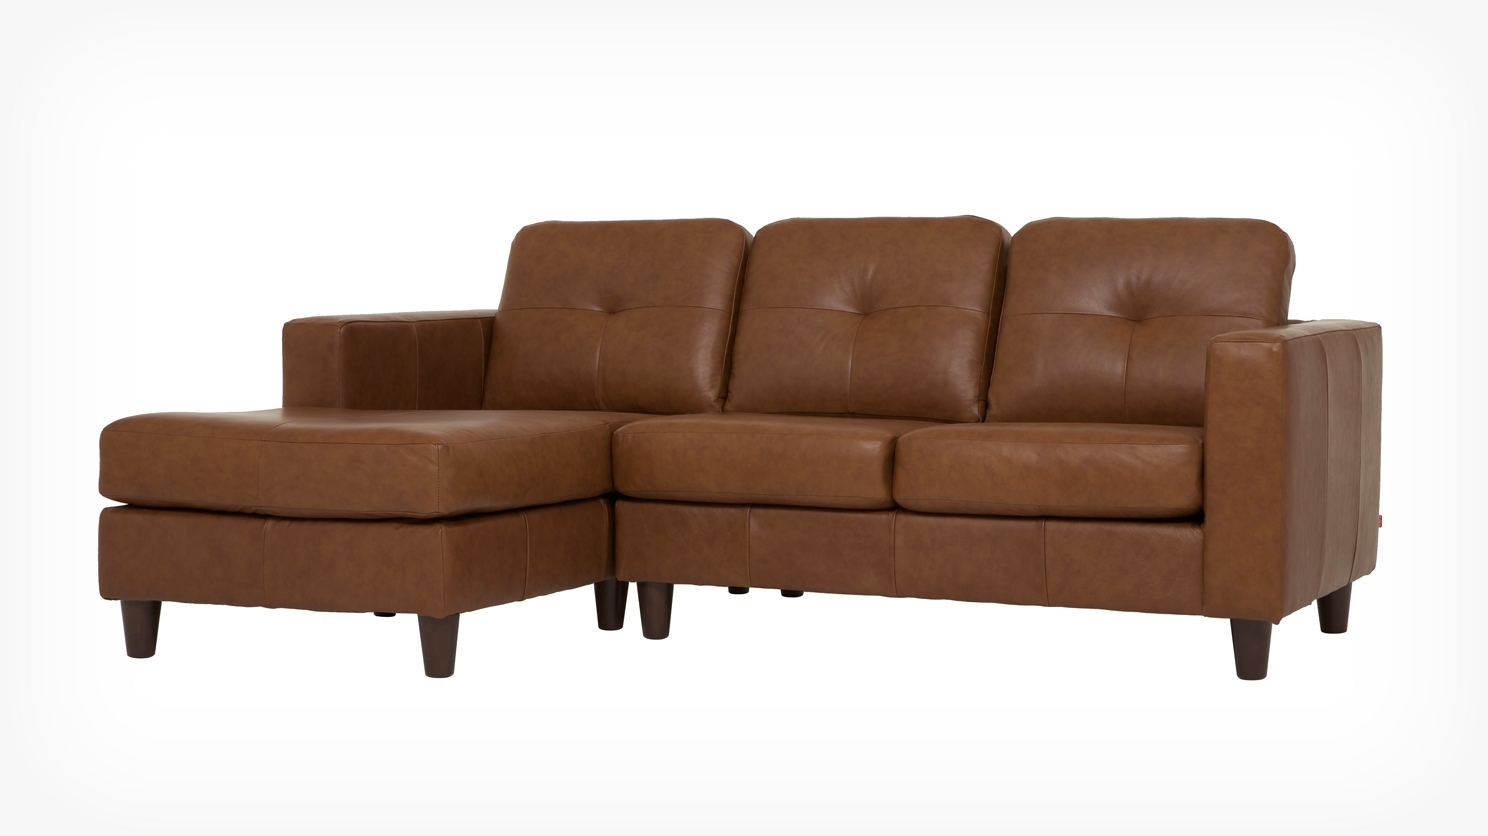 Eq3 | Solo 2 Piece Sectional Sofa With Chaise – Leather Pertaining To Halifax Sectional Sofas (View 7 of 10)